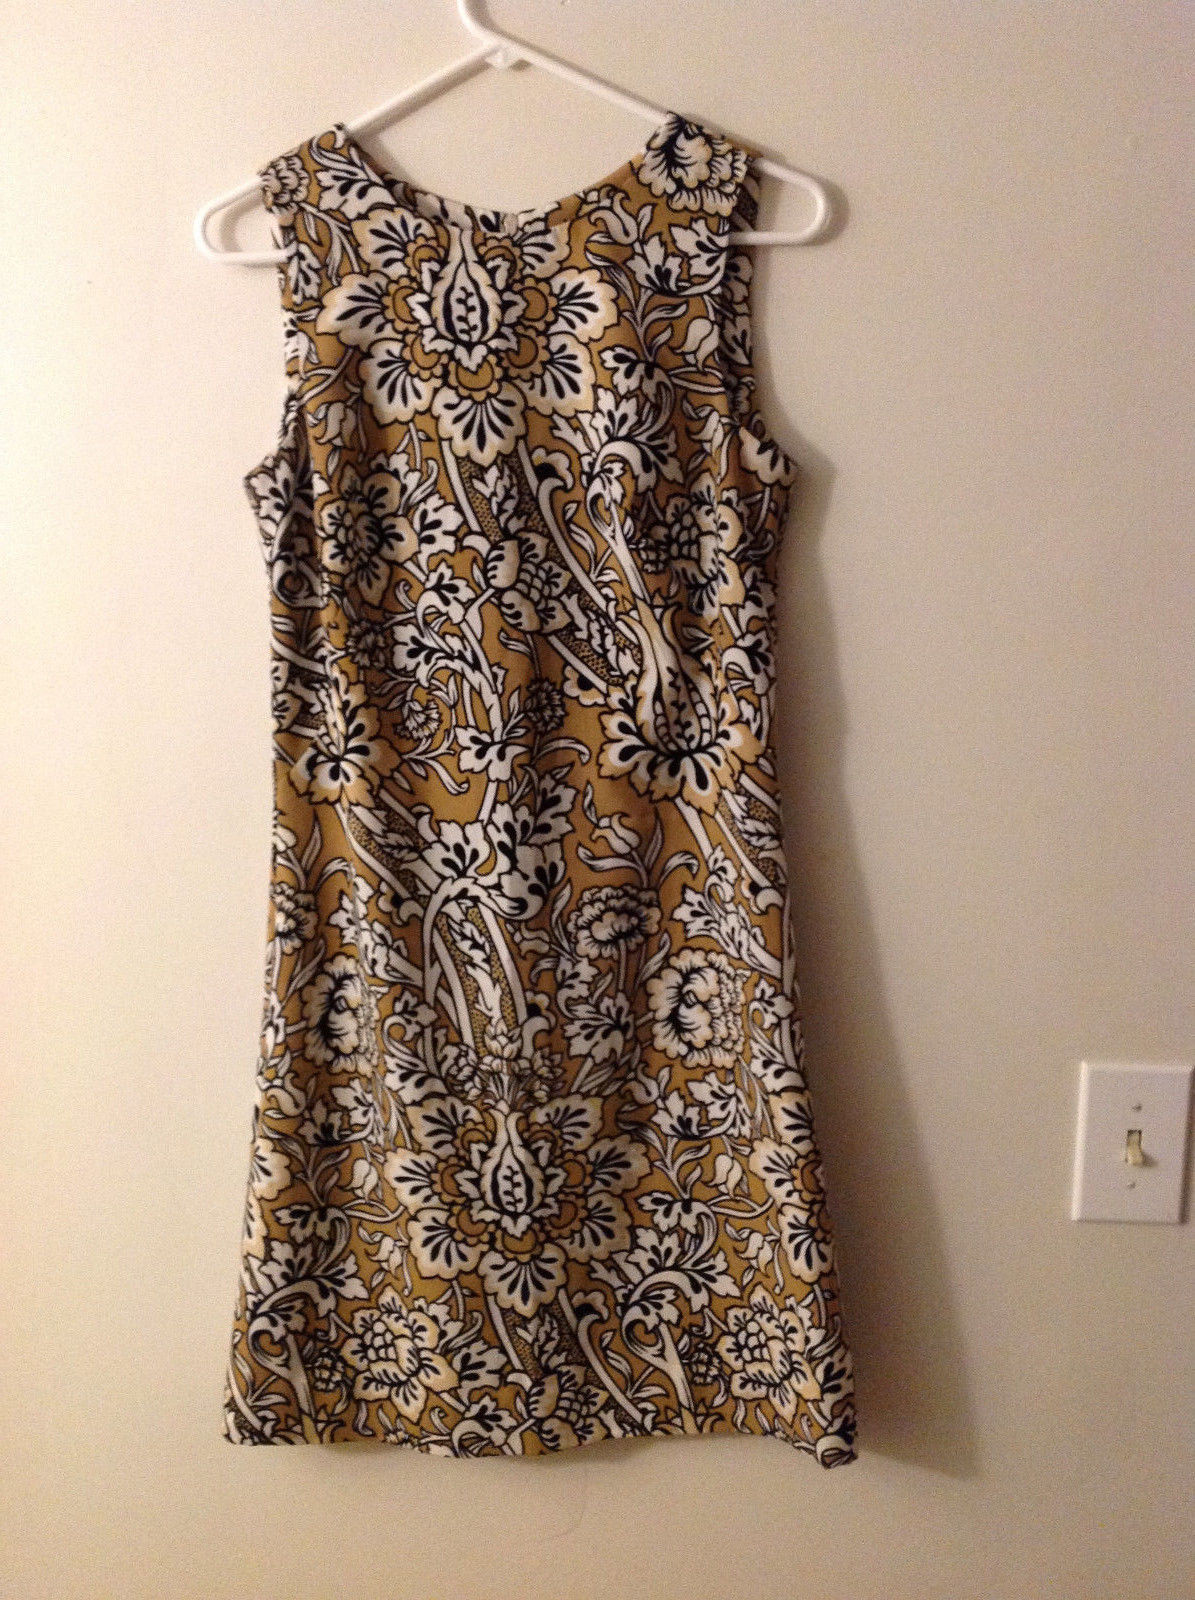 No Brand Women's Size XS Mod Dress A-Line Shift Baroque Print Black White Yellow